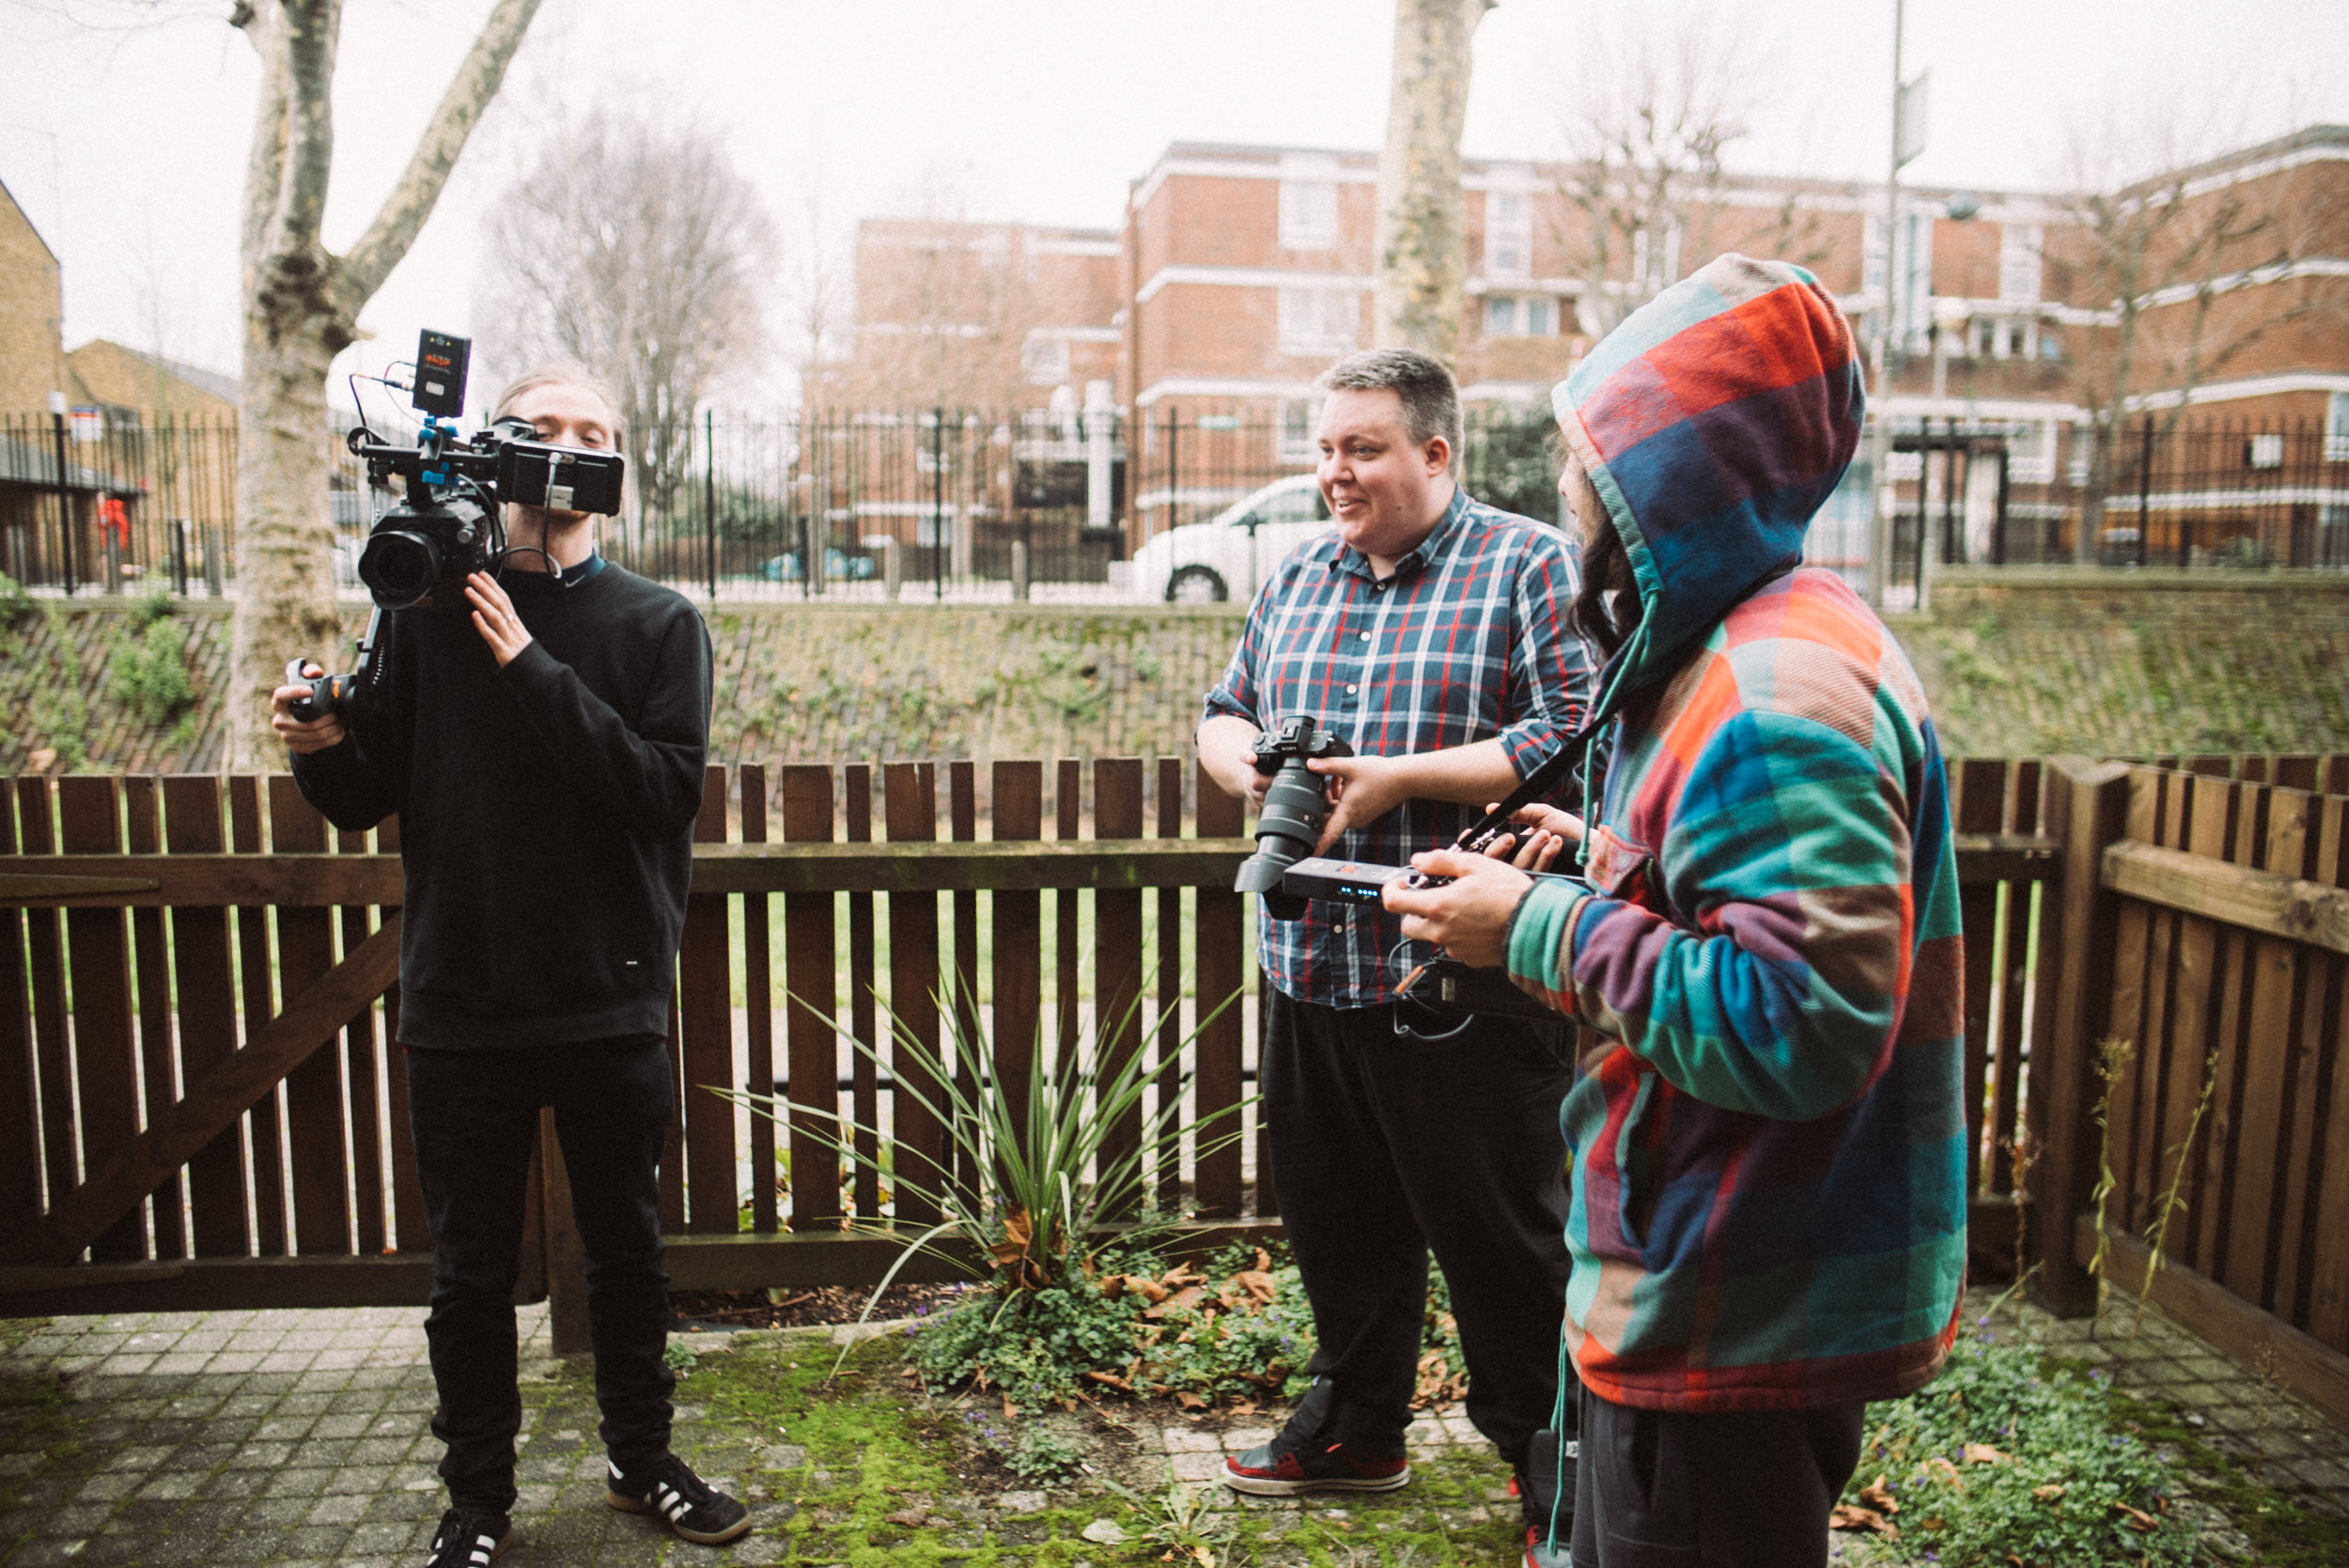 Max Anstruther - %22Come%22 - Music Video BTS - 27.01.18 (17 of 63).jpg